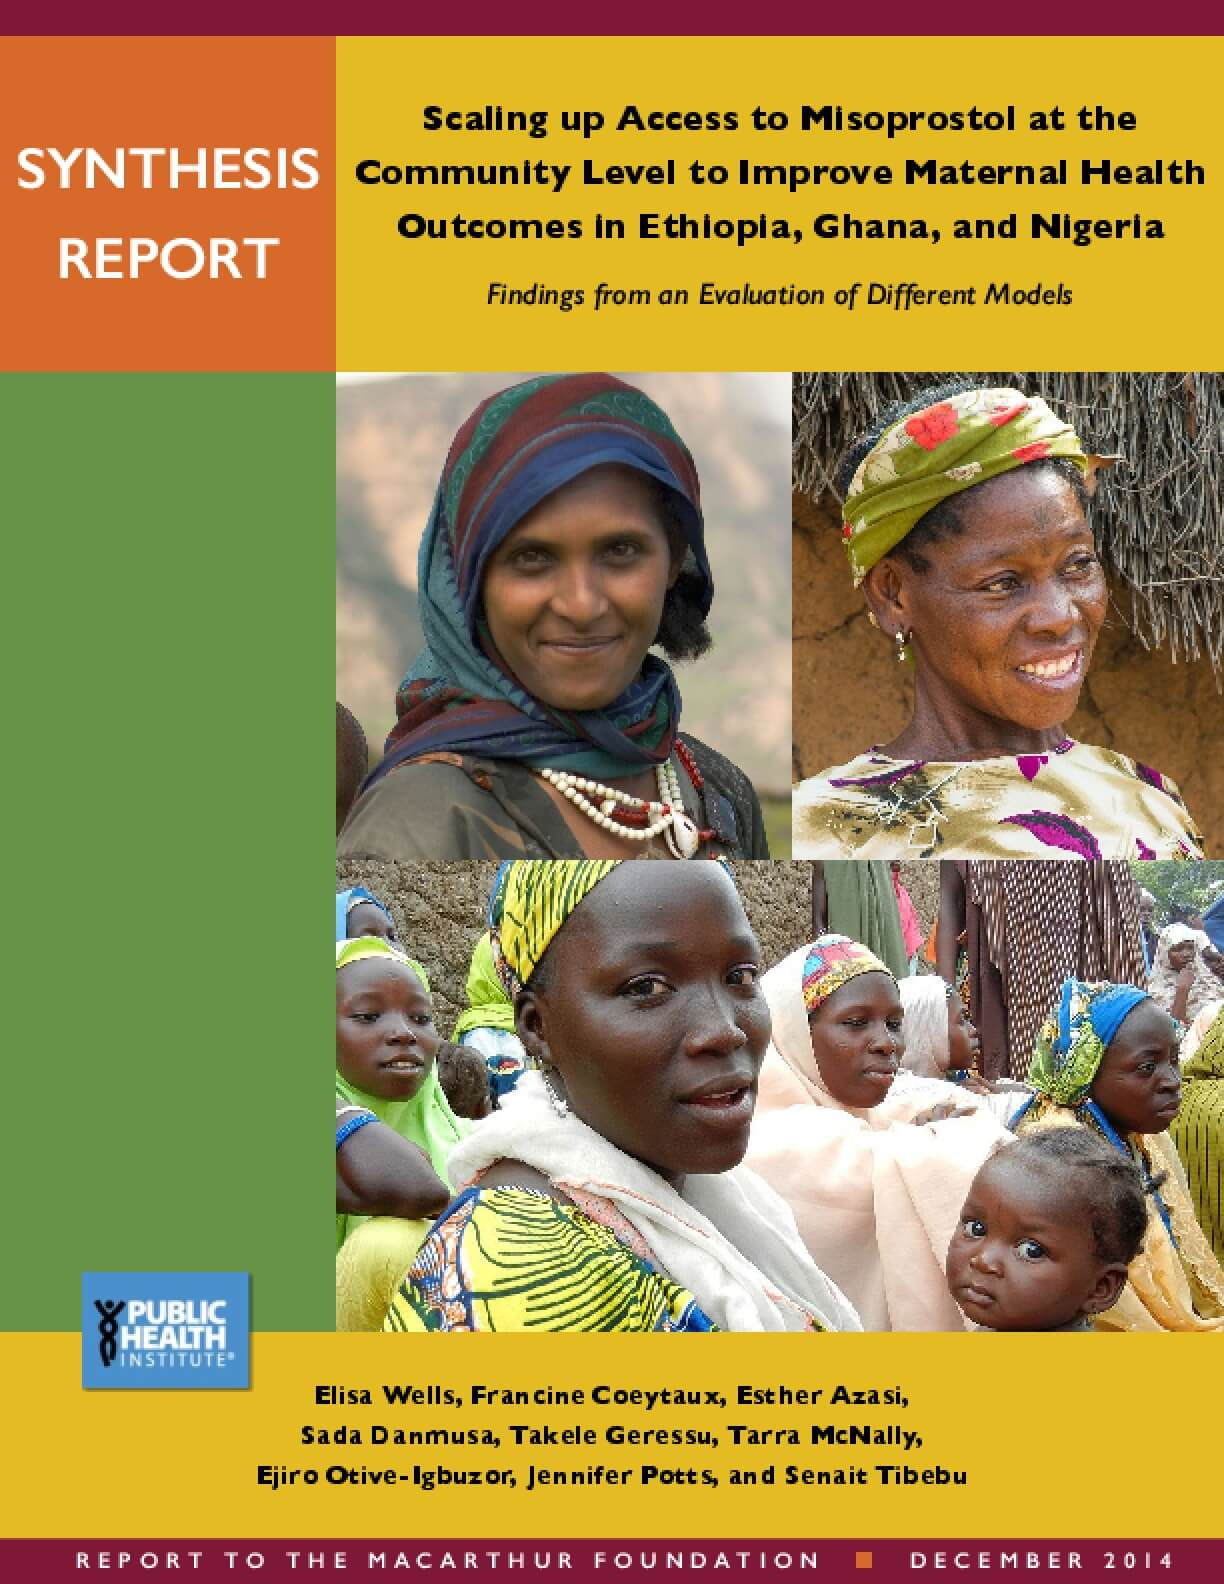 Scaling up Access to Misoprostol at the Community Level to Improve Maternal Health   Outcomes in Ethiopia, Ghana, and Nigeria